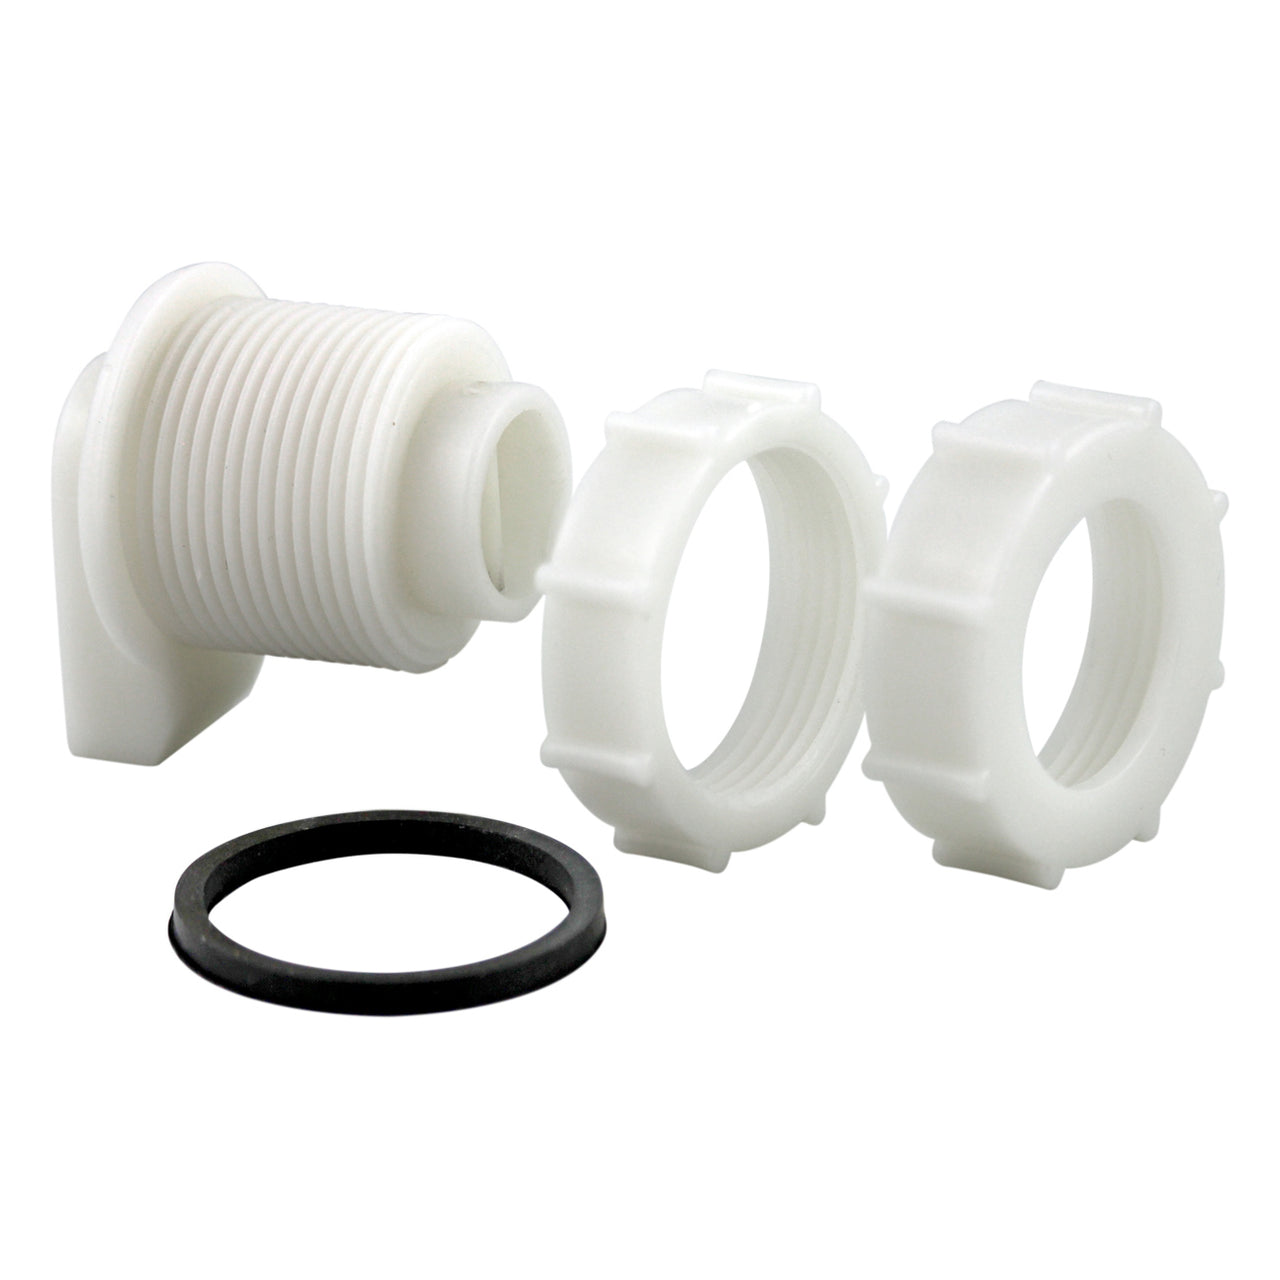 Tuff Stuff Adapter Valve For Calf Feeder - Buckets Pails Feeders Scoops Tubs Bottles Tuff Stuff - Canada